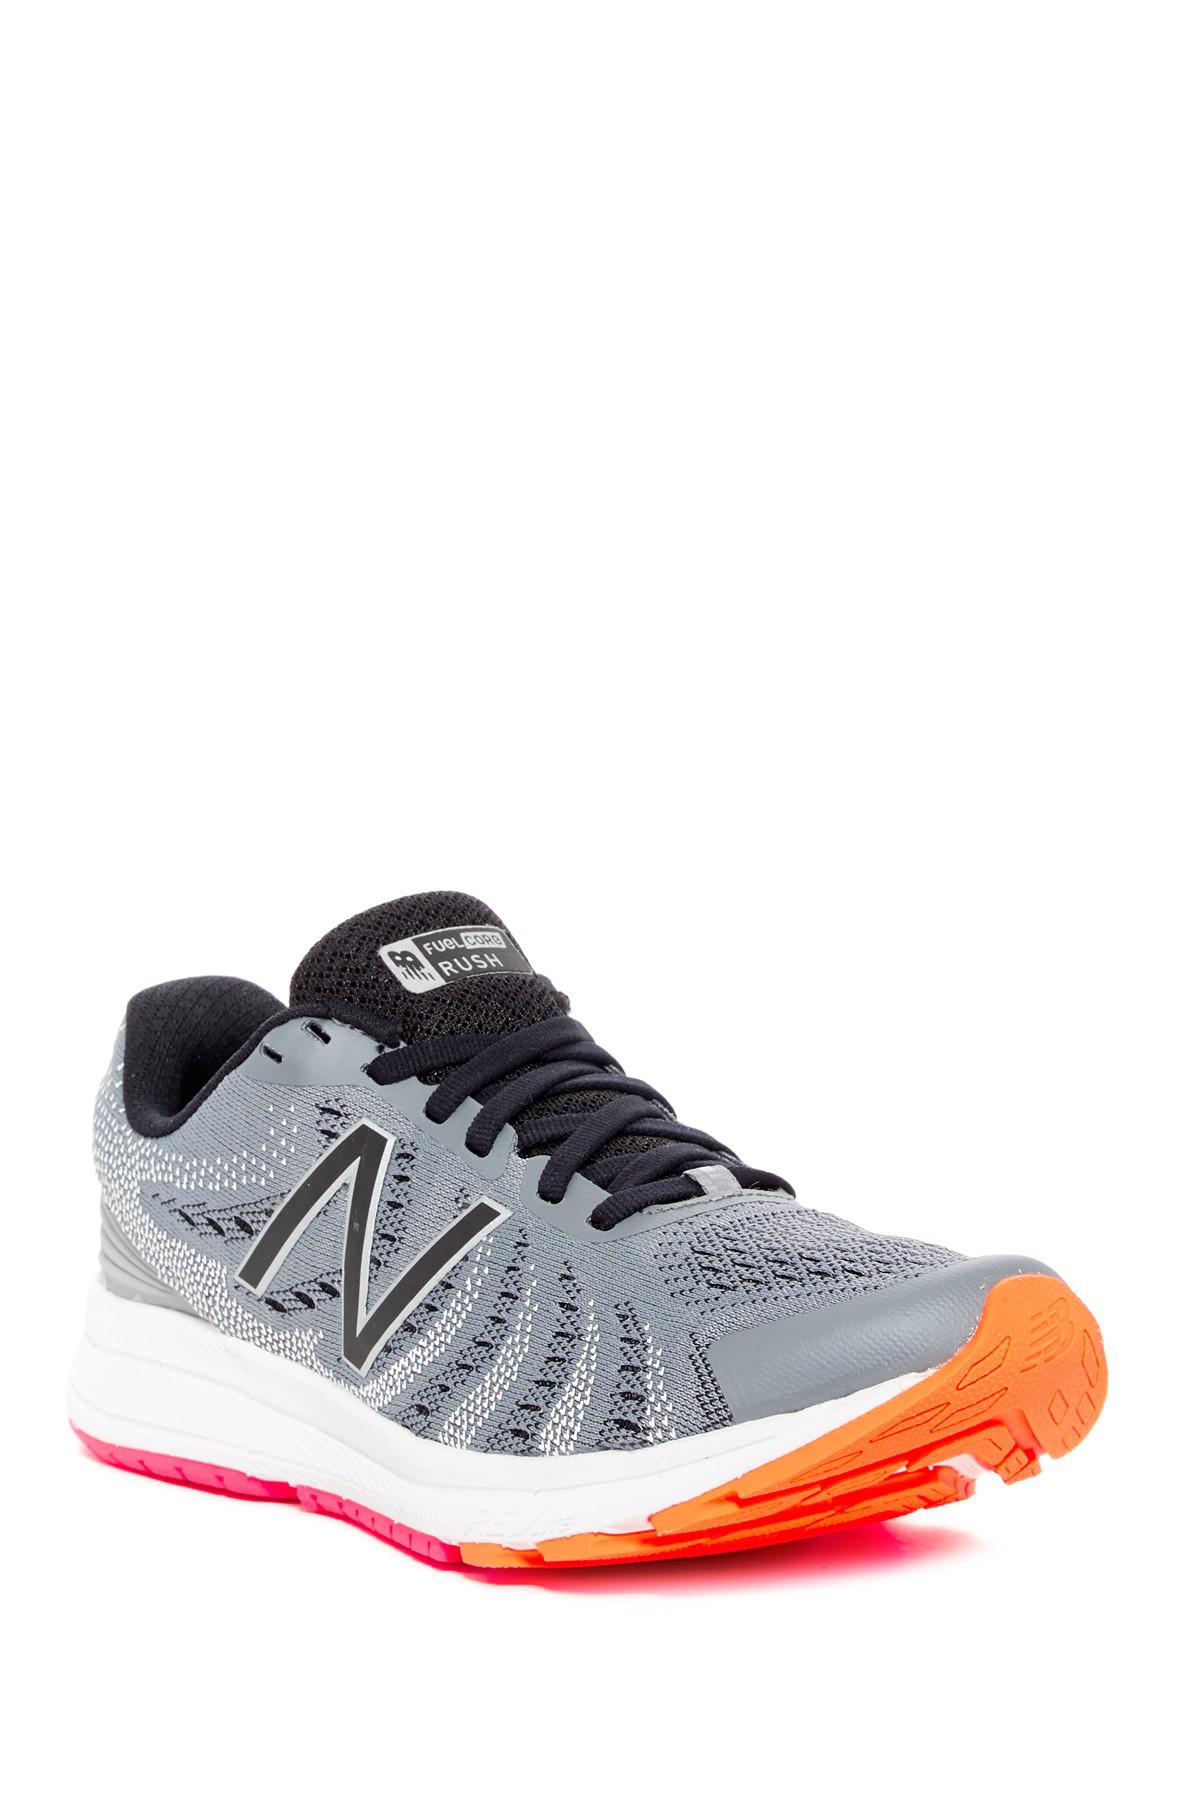 New Balance Q317 v3 Running Sneaker - Wide Width Available dhjWQG